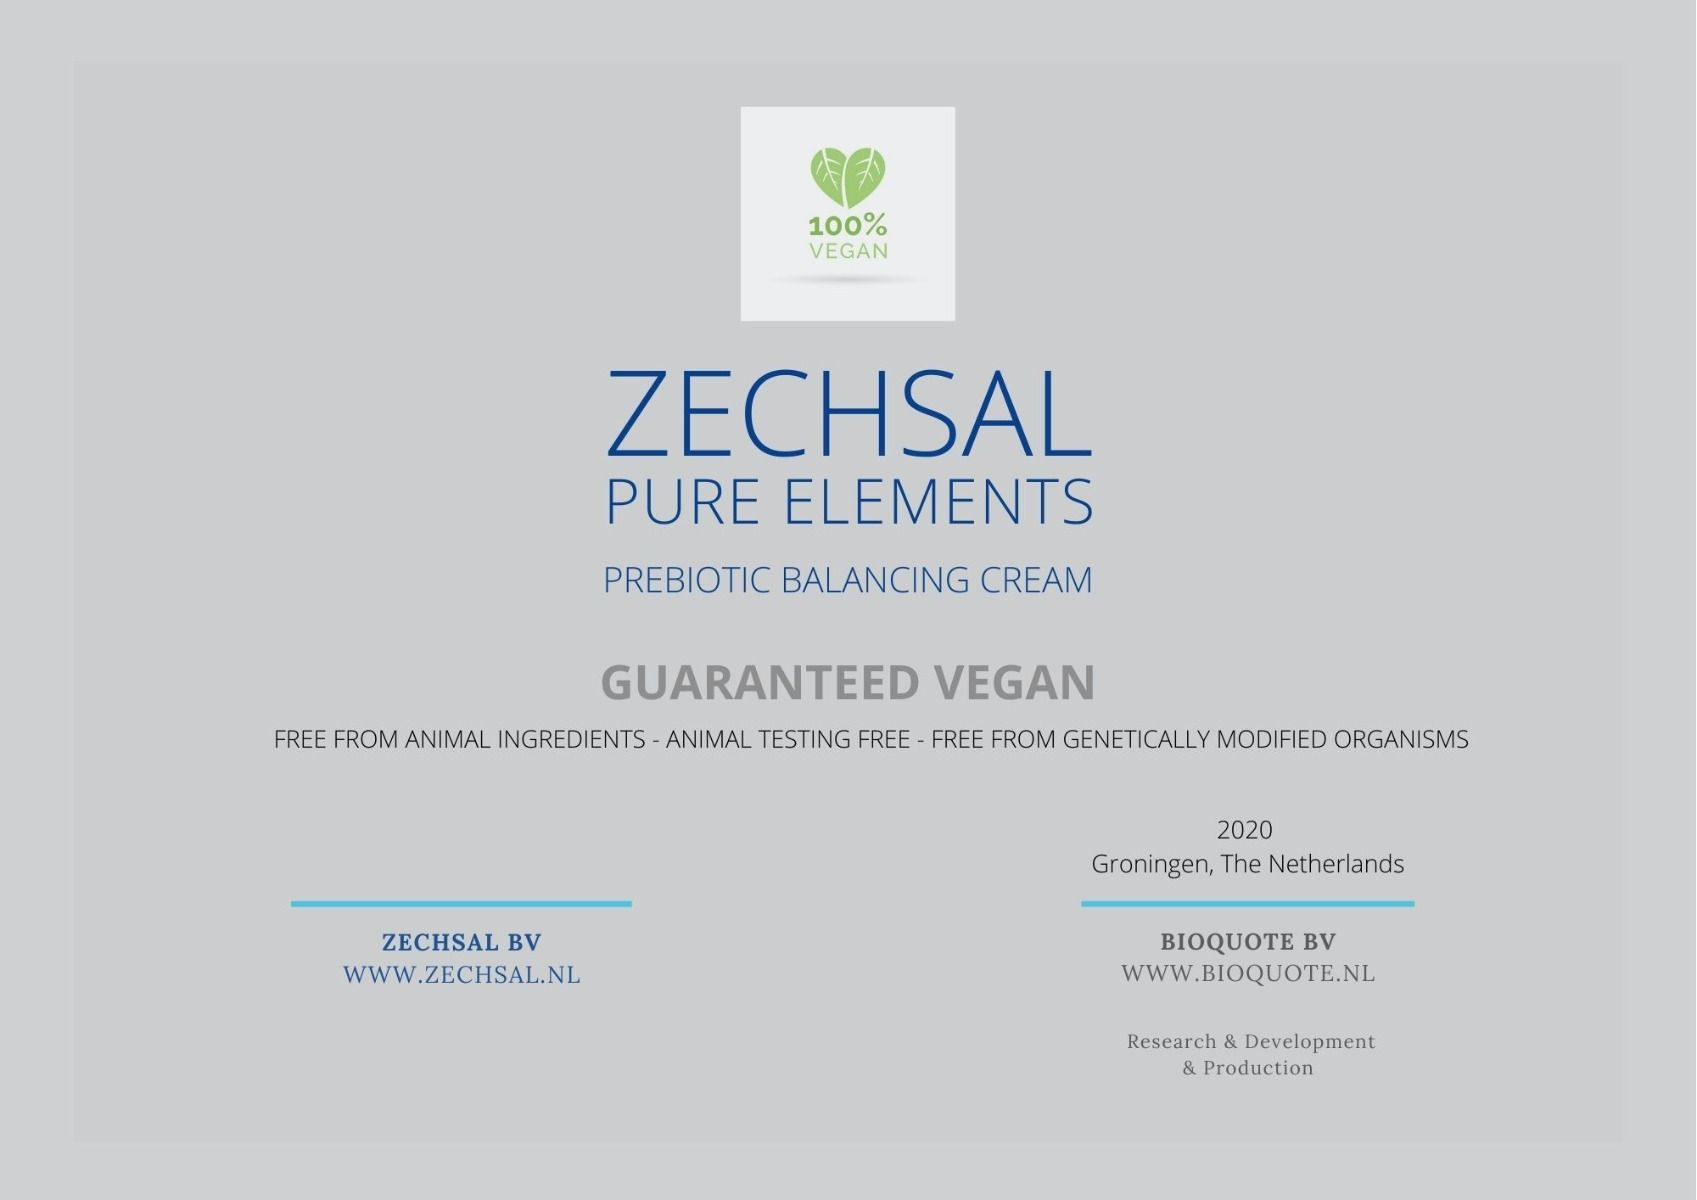 NEW! Zechsal Pure Elements facial cream, 50 ml.